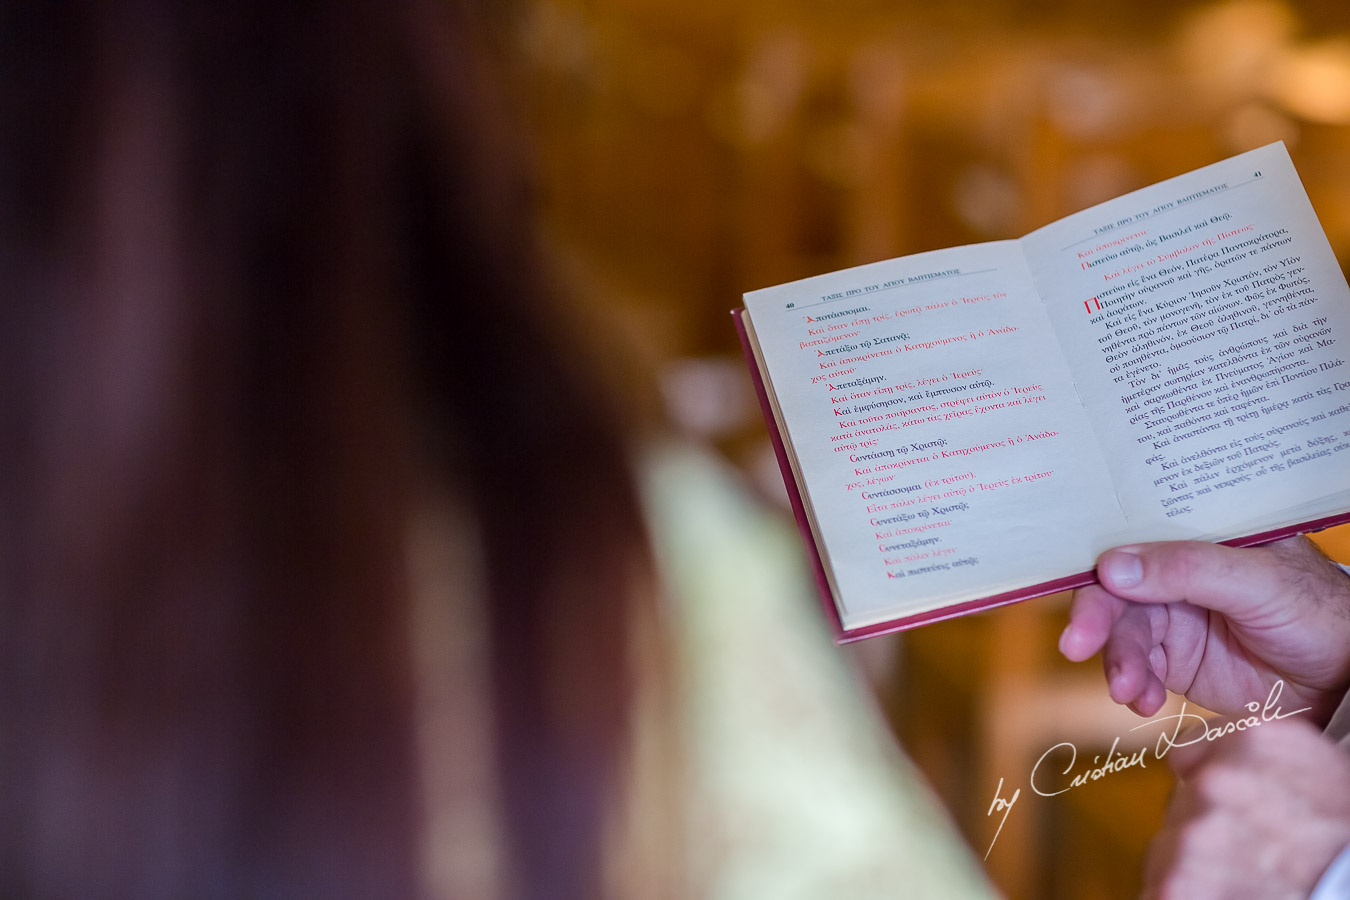 Baptism Photograher in Nicosia - Chrisanti's Christening by Cristian Dascalu - 16